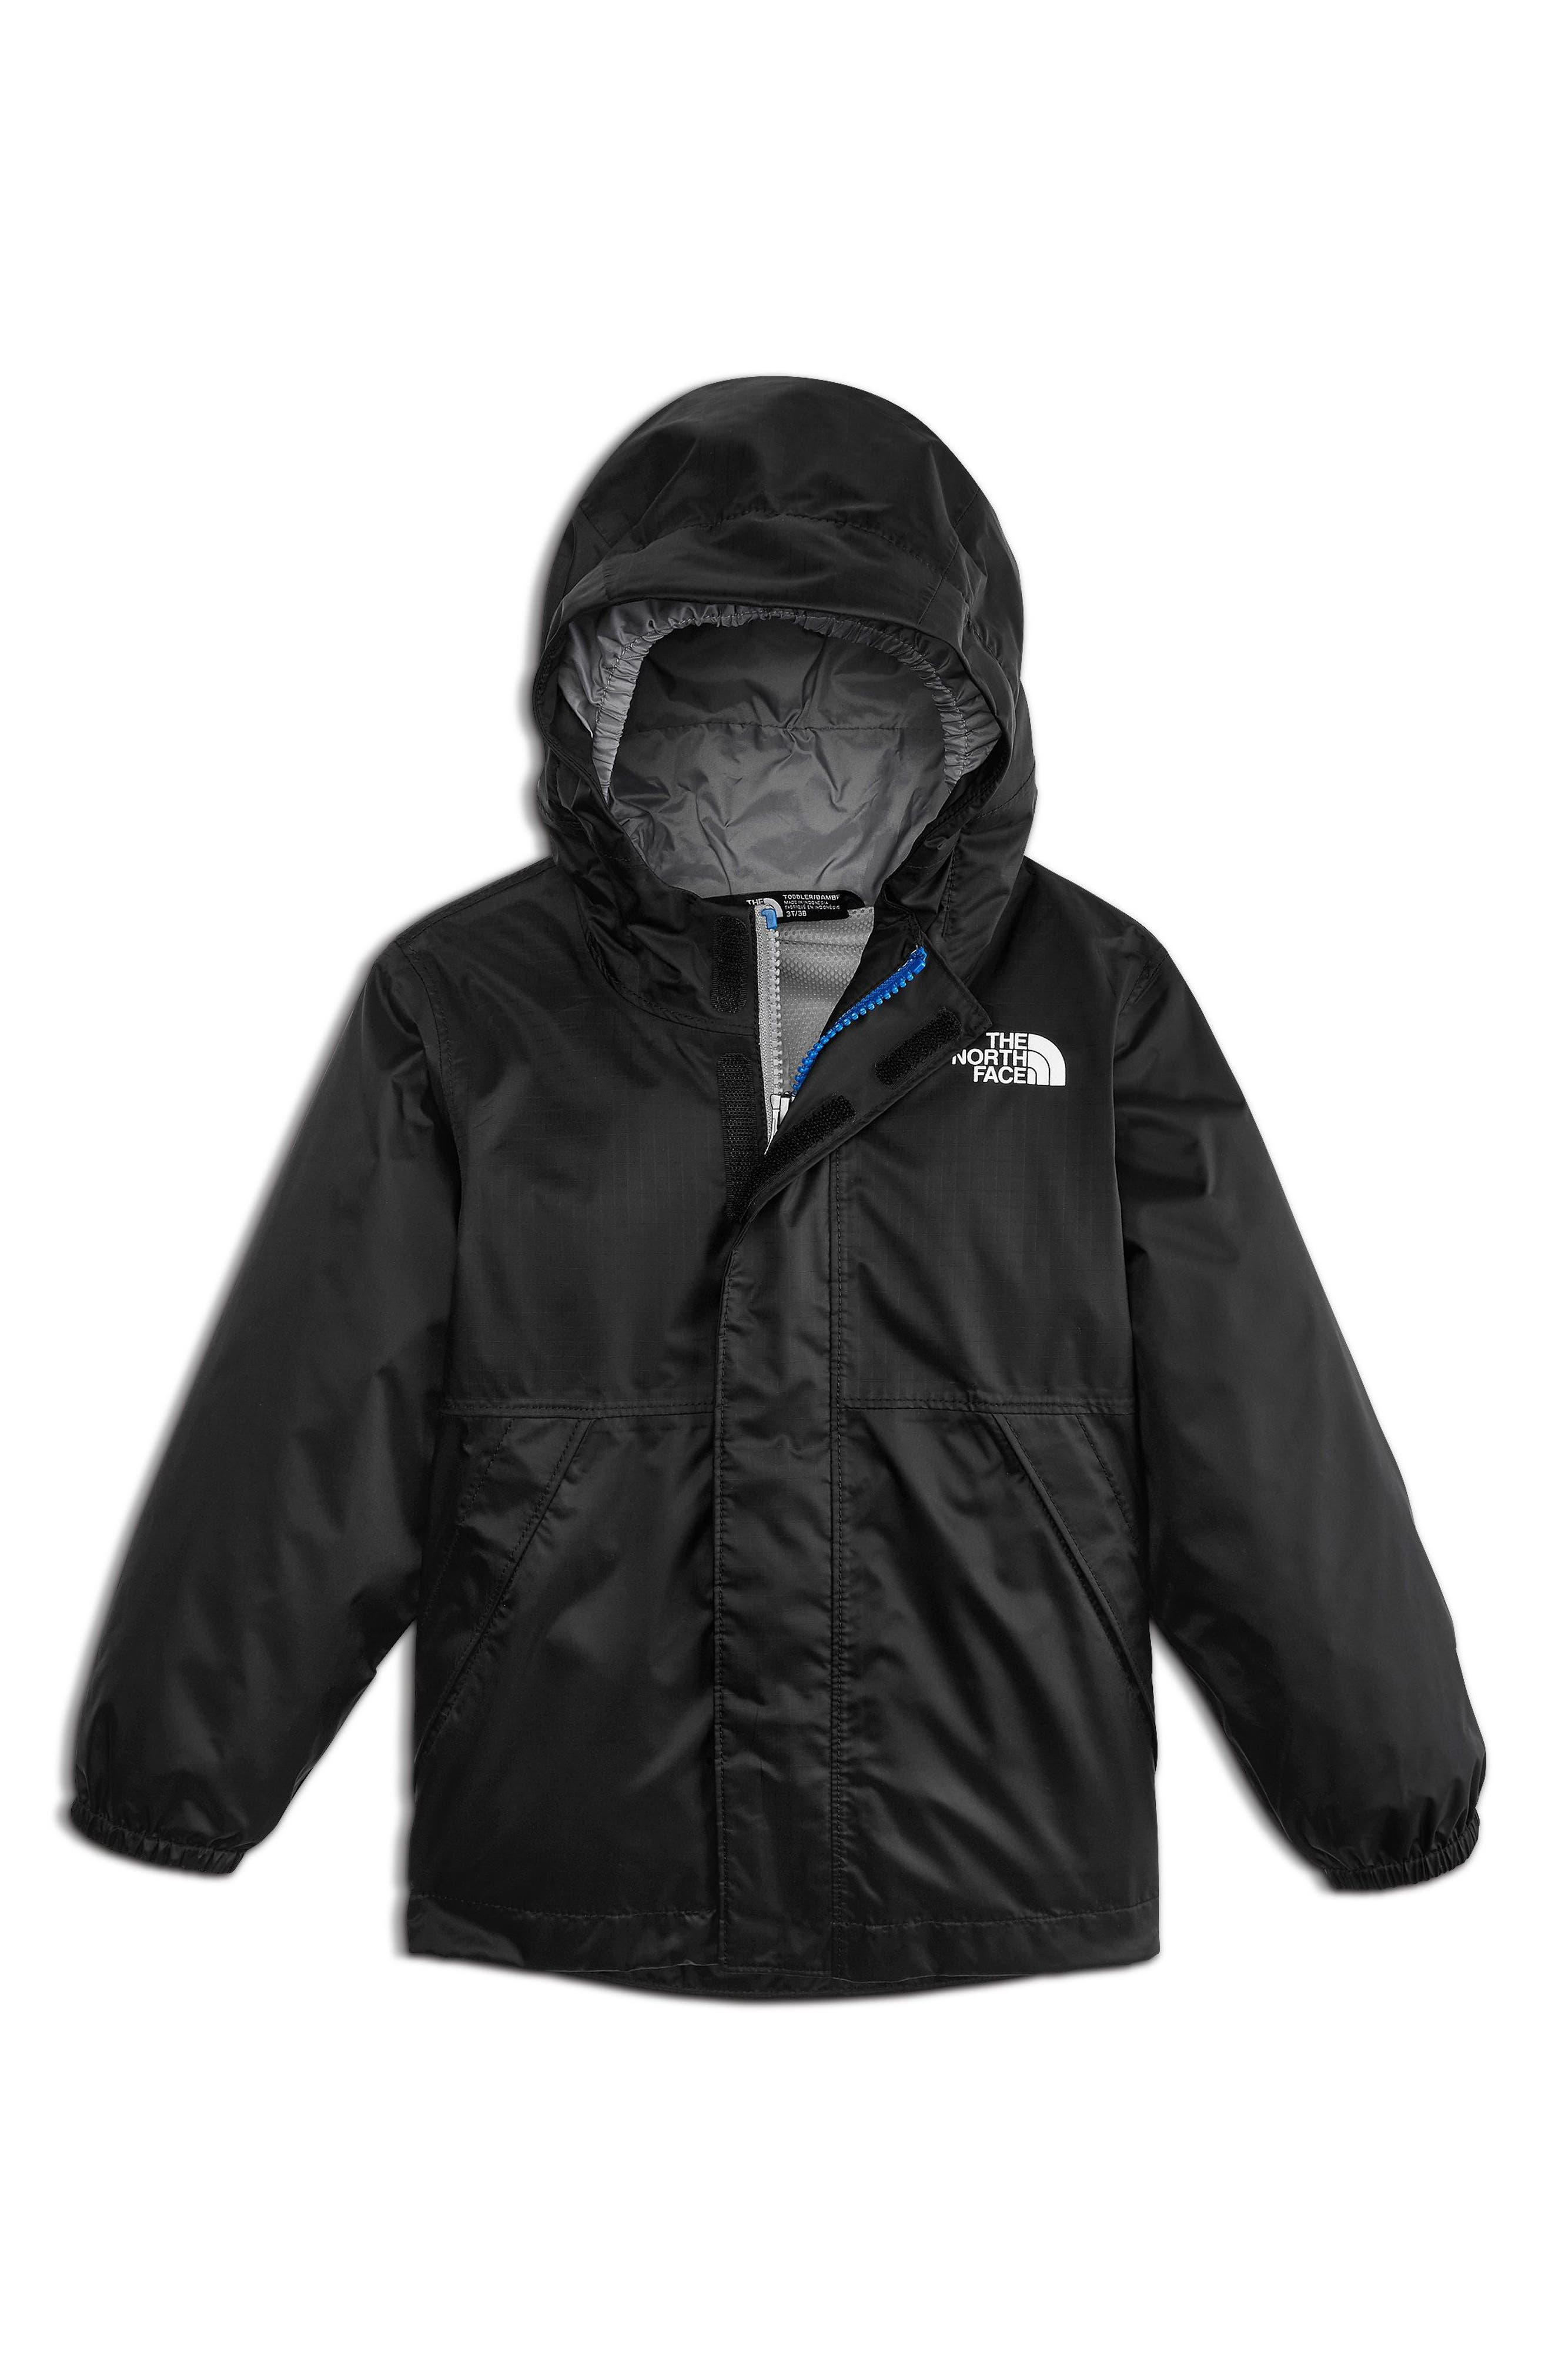 Stormy Rain TriClimate<sup>®</sup> Waterproof 3-in-1 Jacket,                         Main,                         color, Black